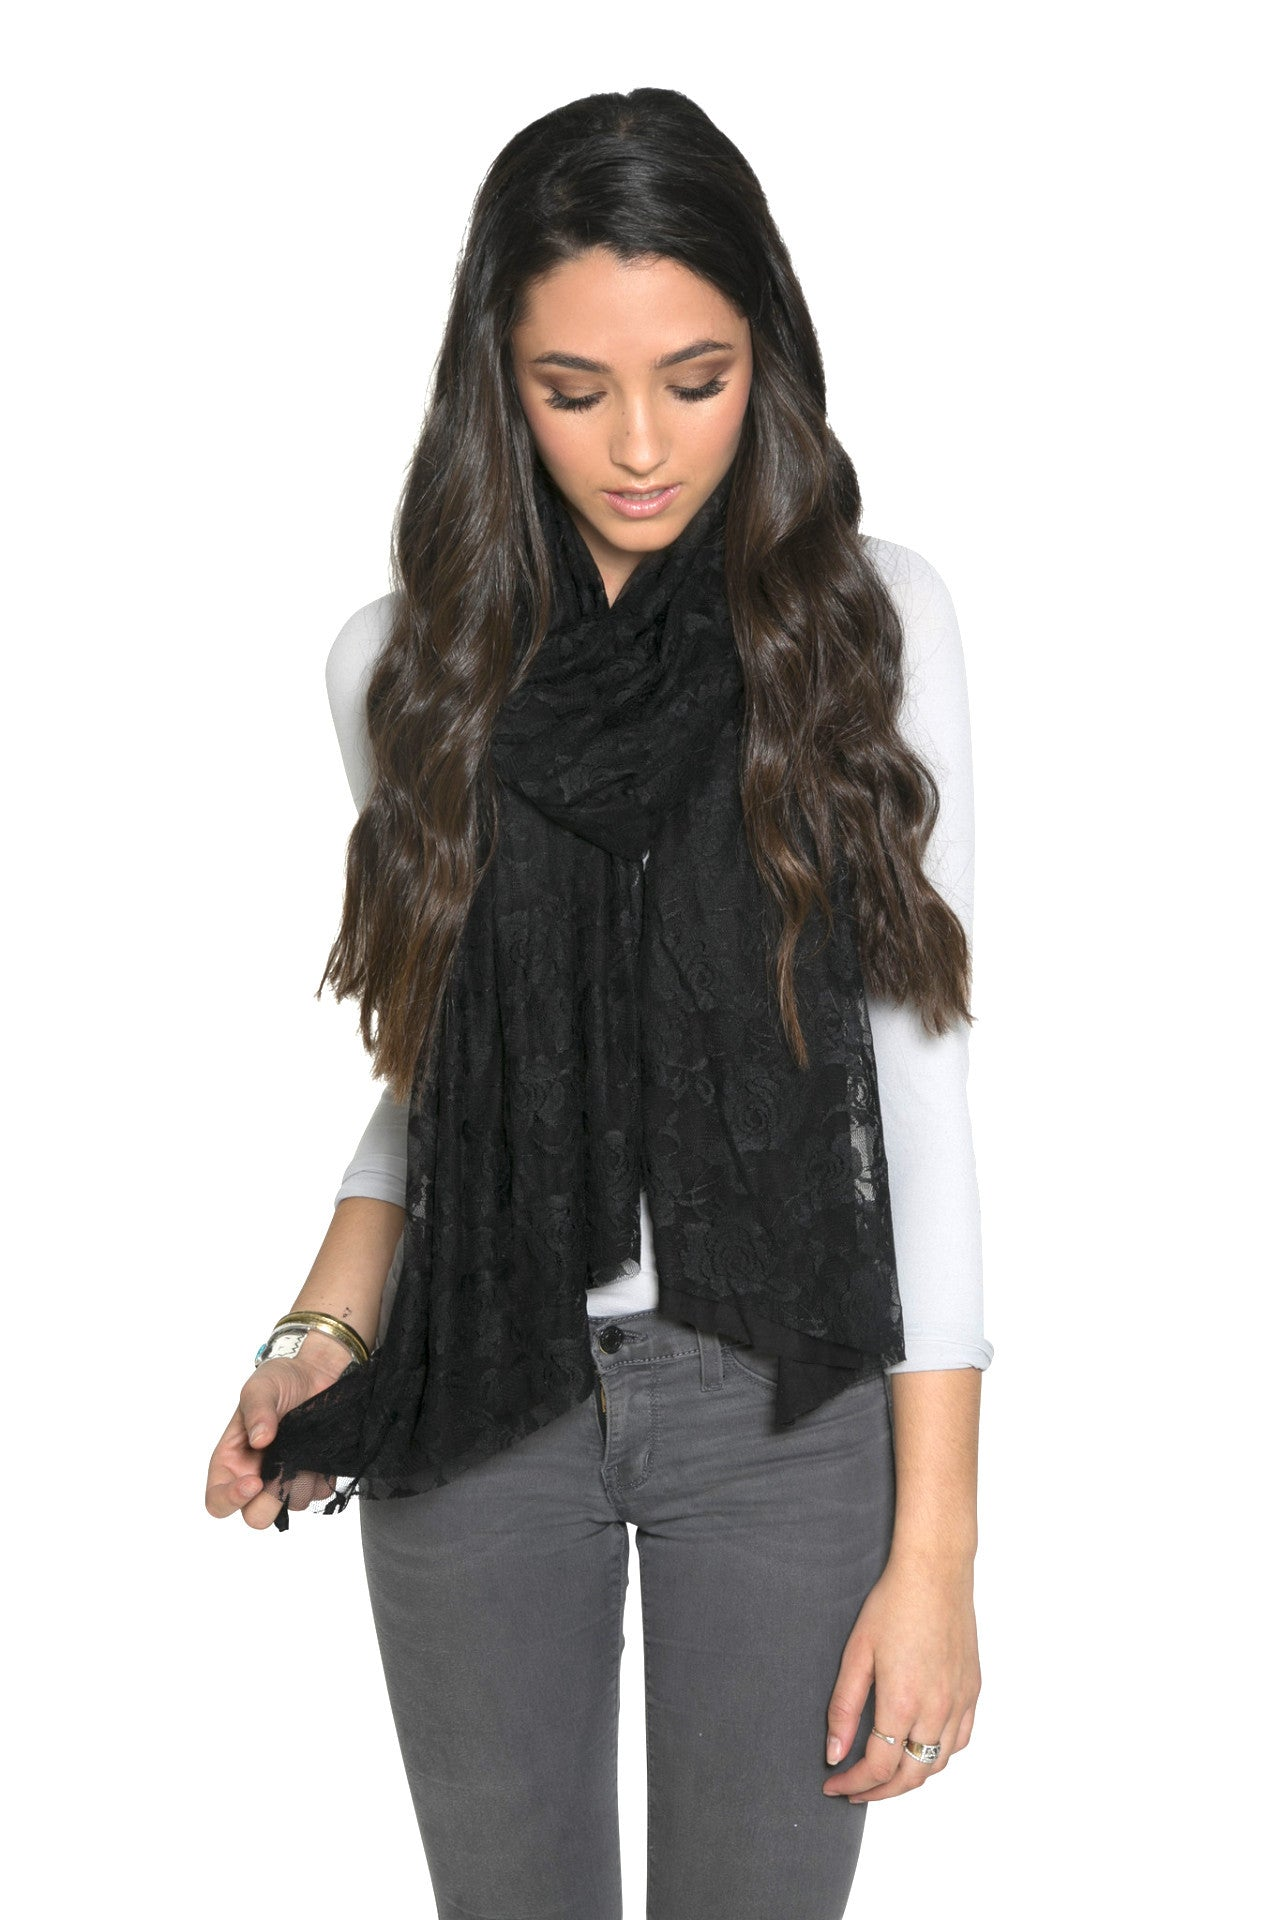 BLACK LACE WRAP WITH BLACK JERSEY